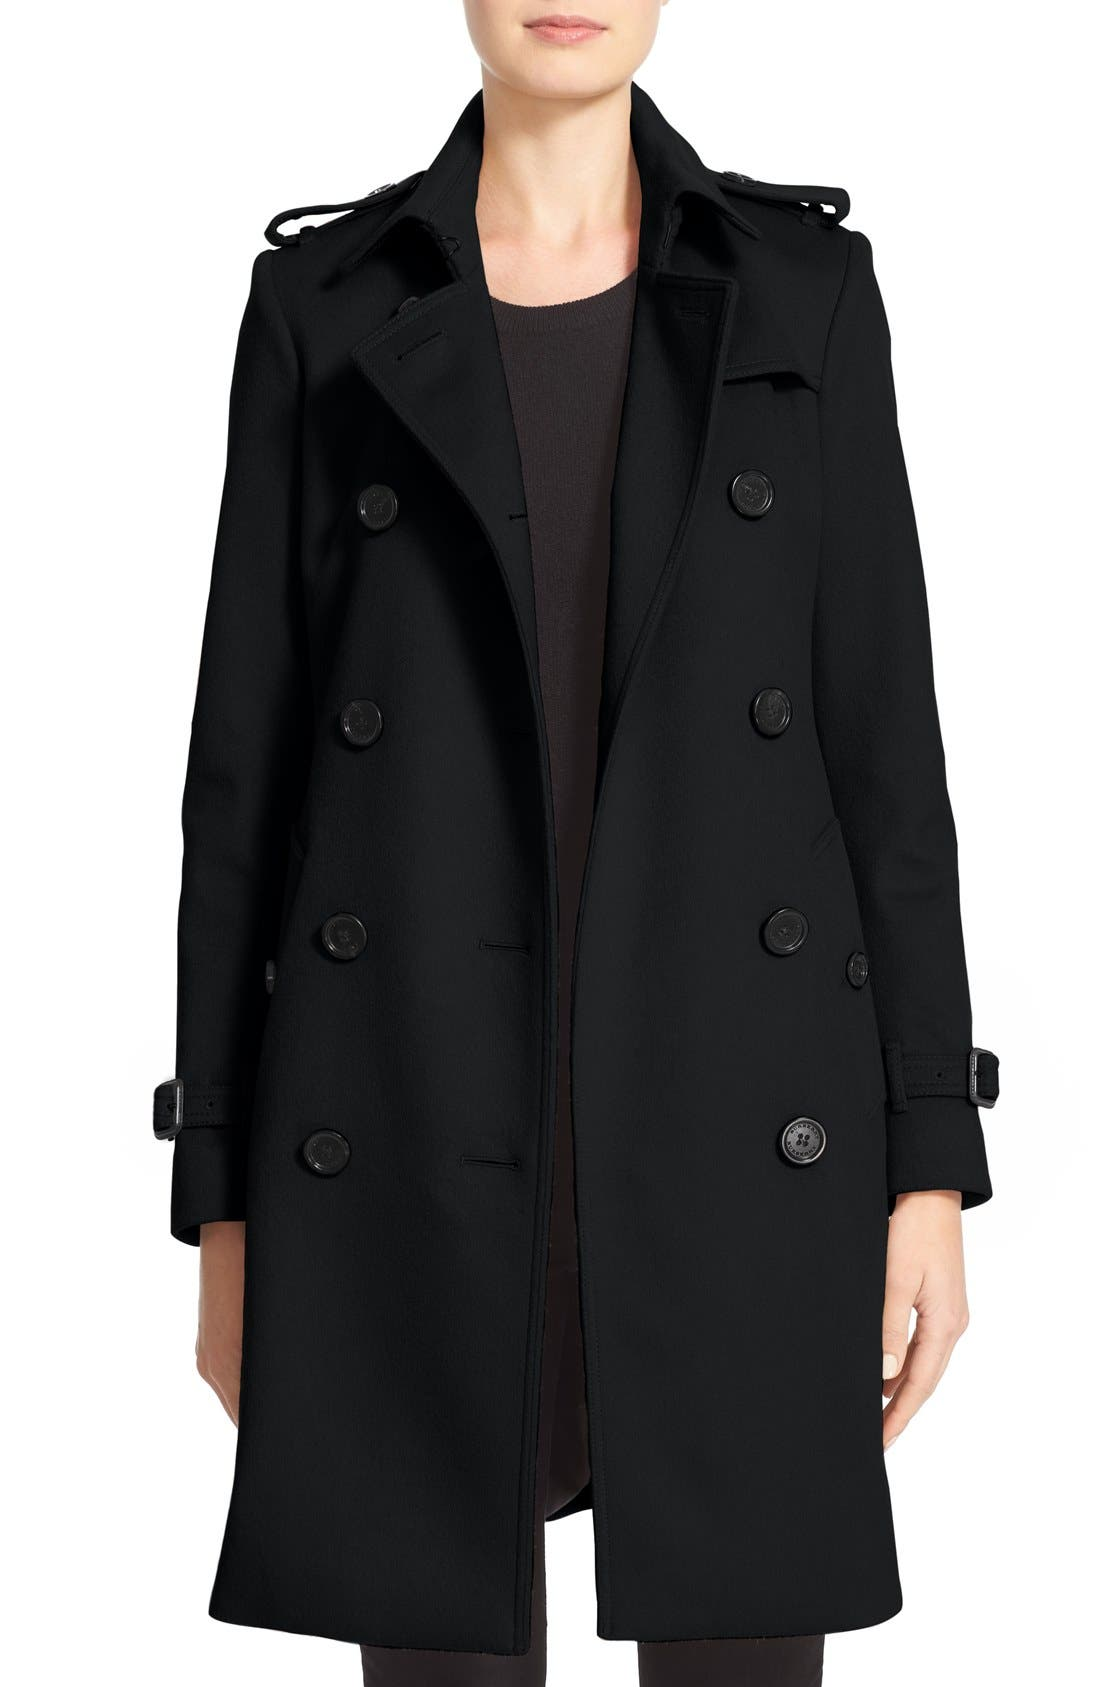 Main Image - Burberry Kensington Double Breasted Wool & Cashmere Trench Coat